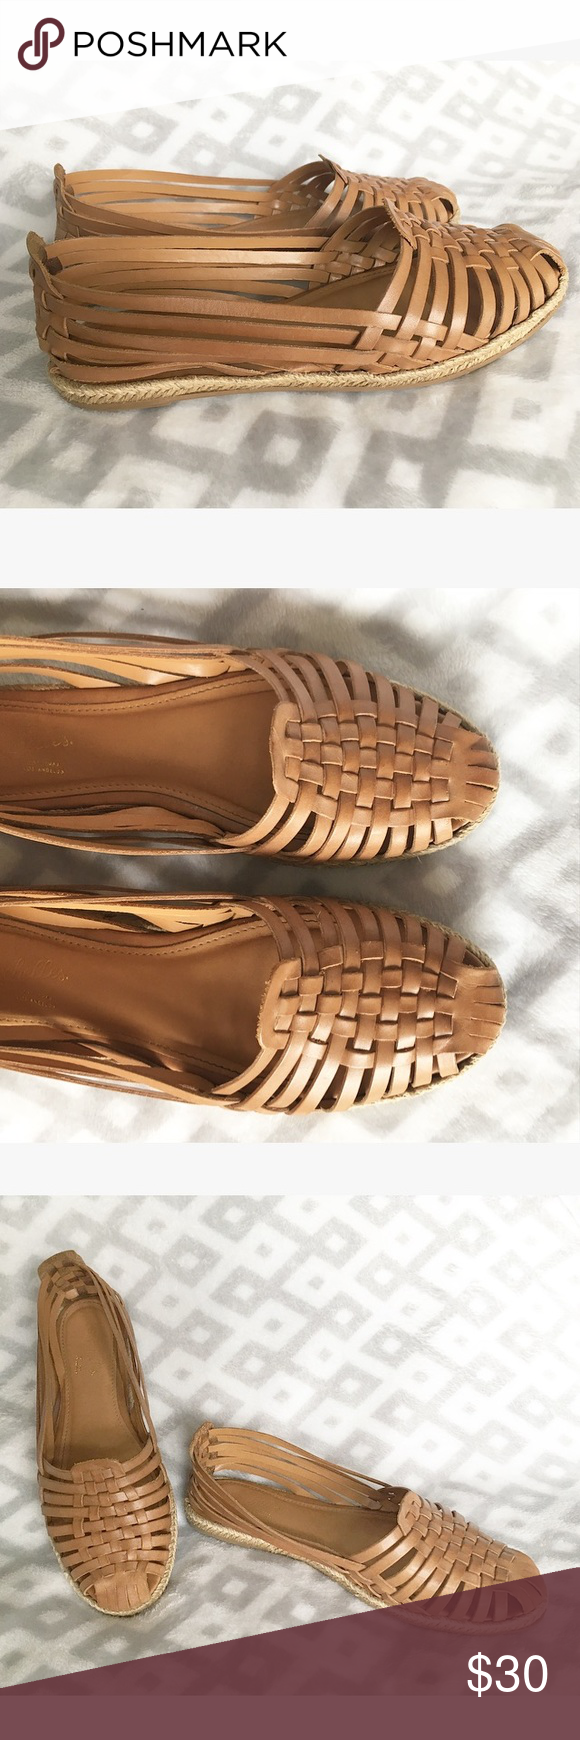 5dae9638972a Seychelles Huarache Sandals Huarache sandal flats by Seychelles Woven  espadrille accent around the sole Woven tanned